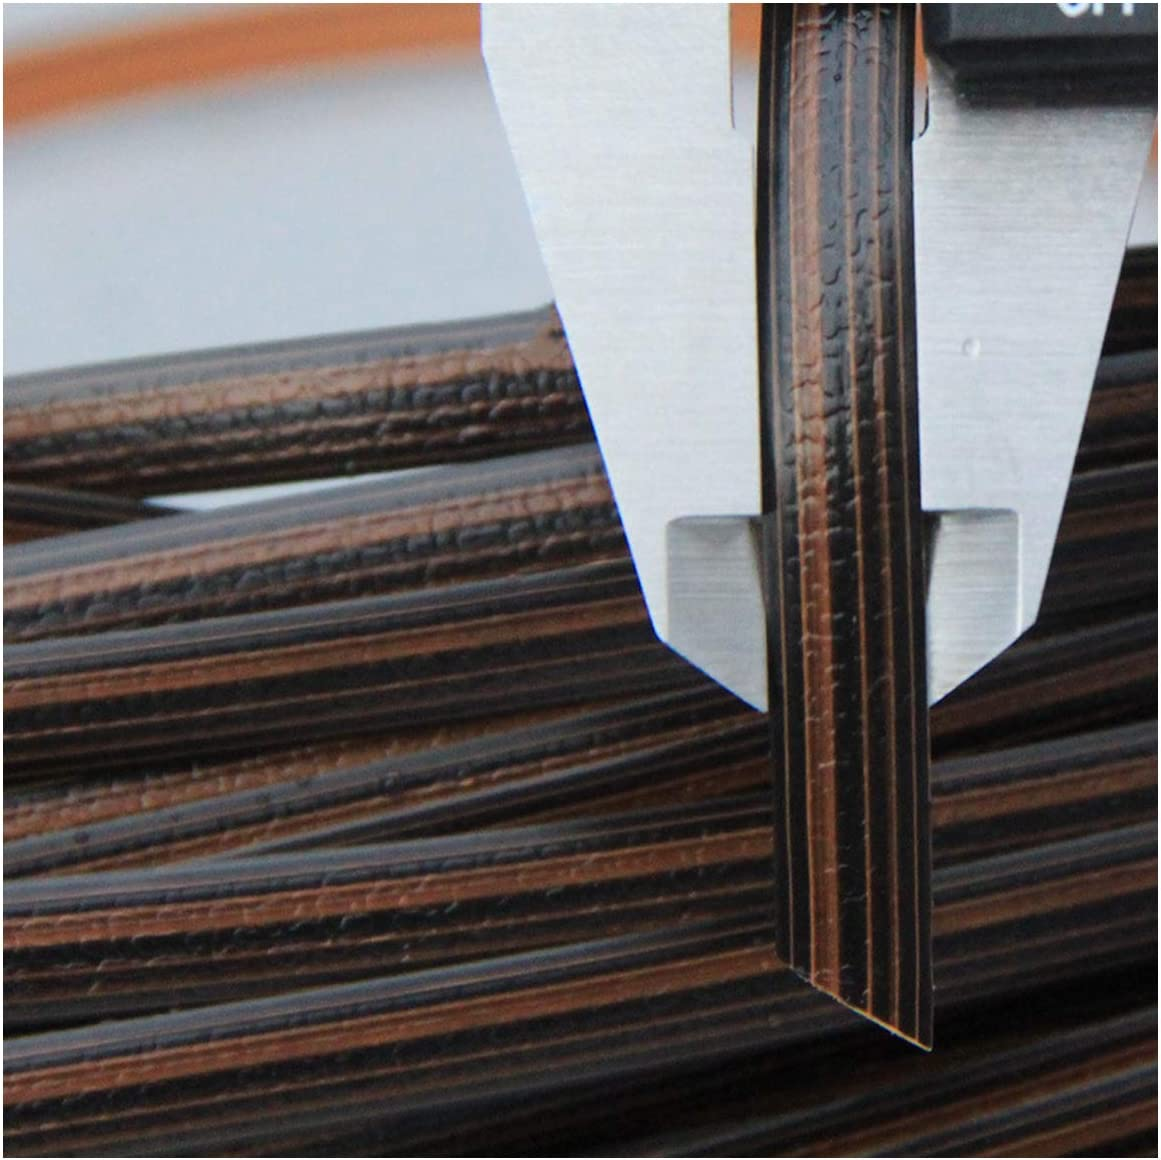 Black Synthetic Rattan Repair Knit Material Plastic Rattan for DIY Home Furniture Chair Table Storage Basket Queenbox 8mm x 10m Gradient Flat Rattan Weaving